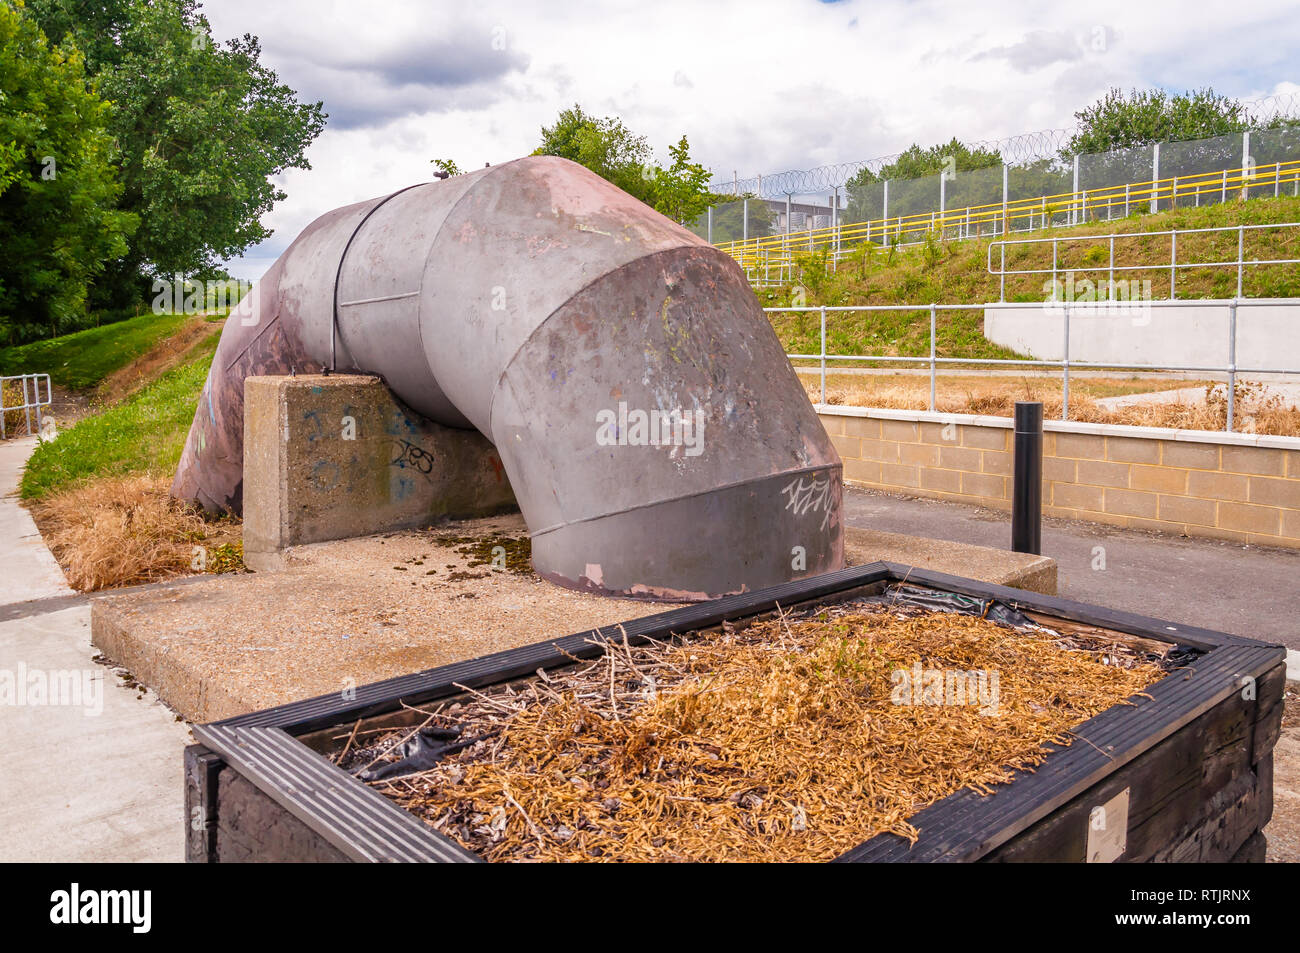 Booster Pump,Greenways, near Abbey Mills Pumping Station, Stratford, London, England, Uk - Stock Image